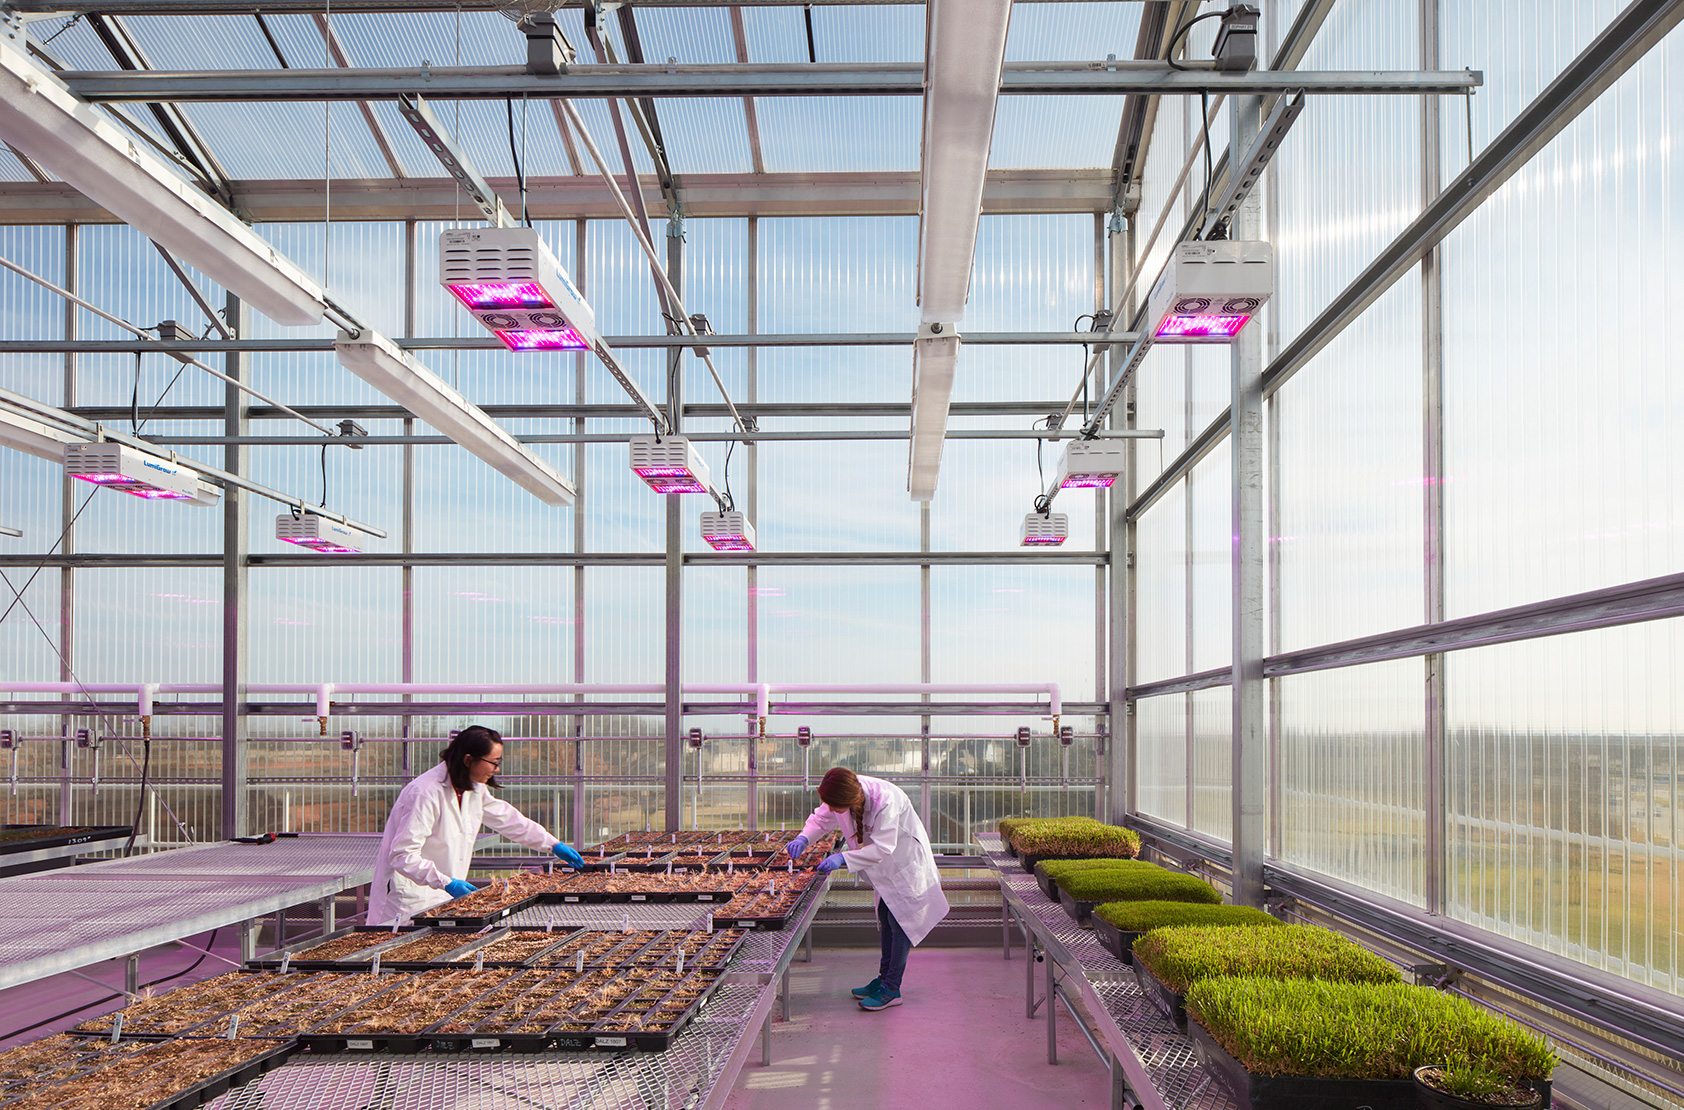 Texas A&M University - AgriLife Research Center